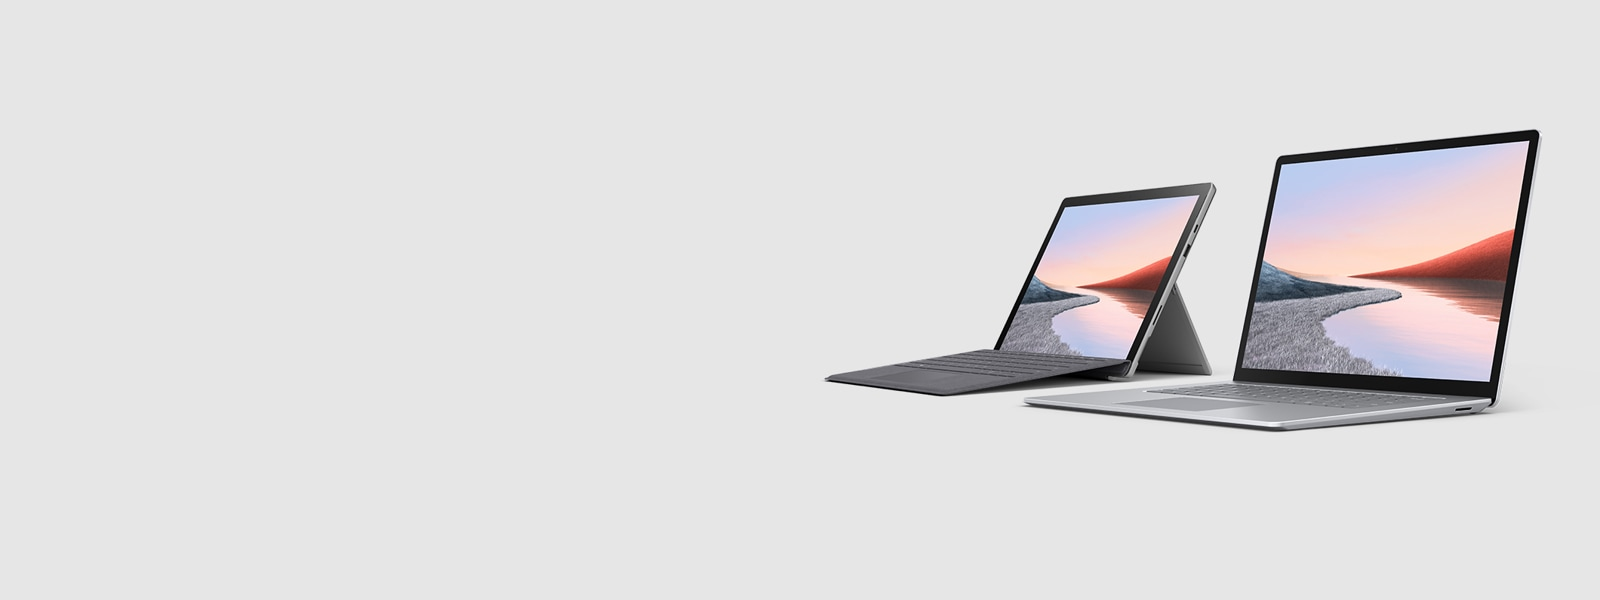 Surface Pro 7, Surface Laptop 3